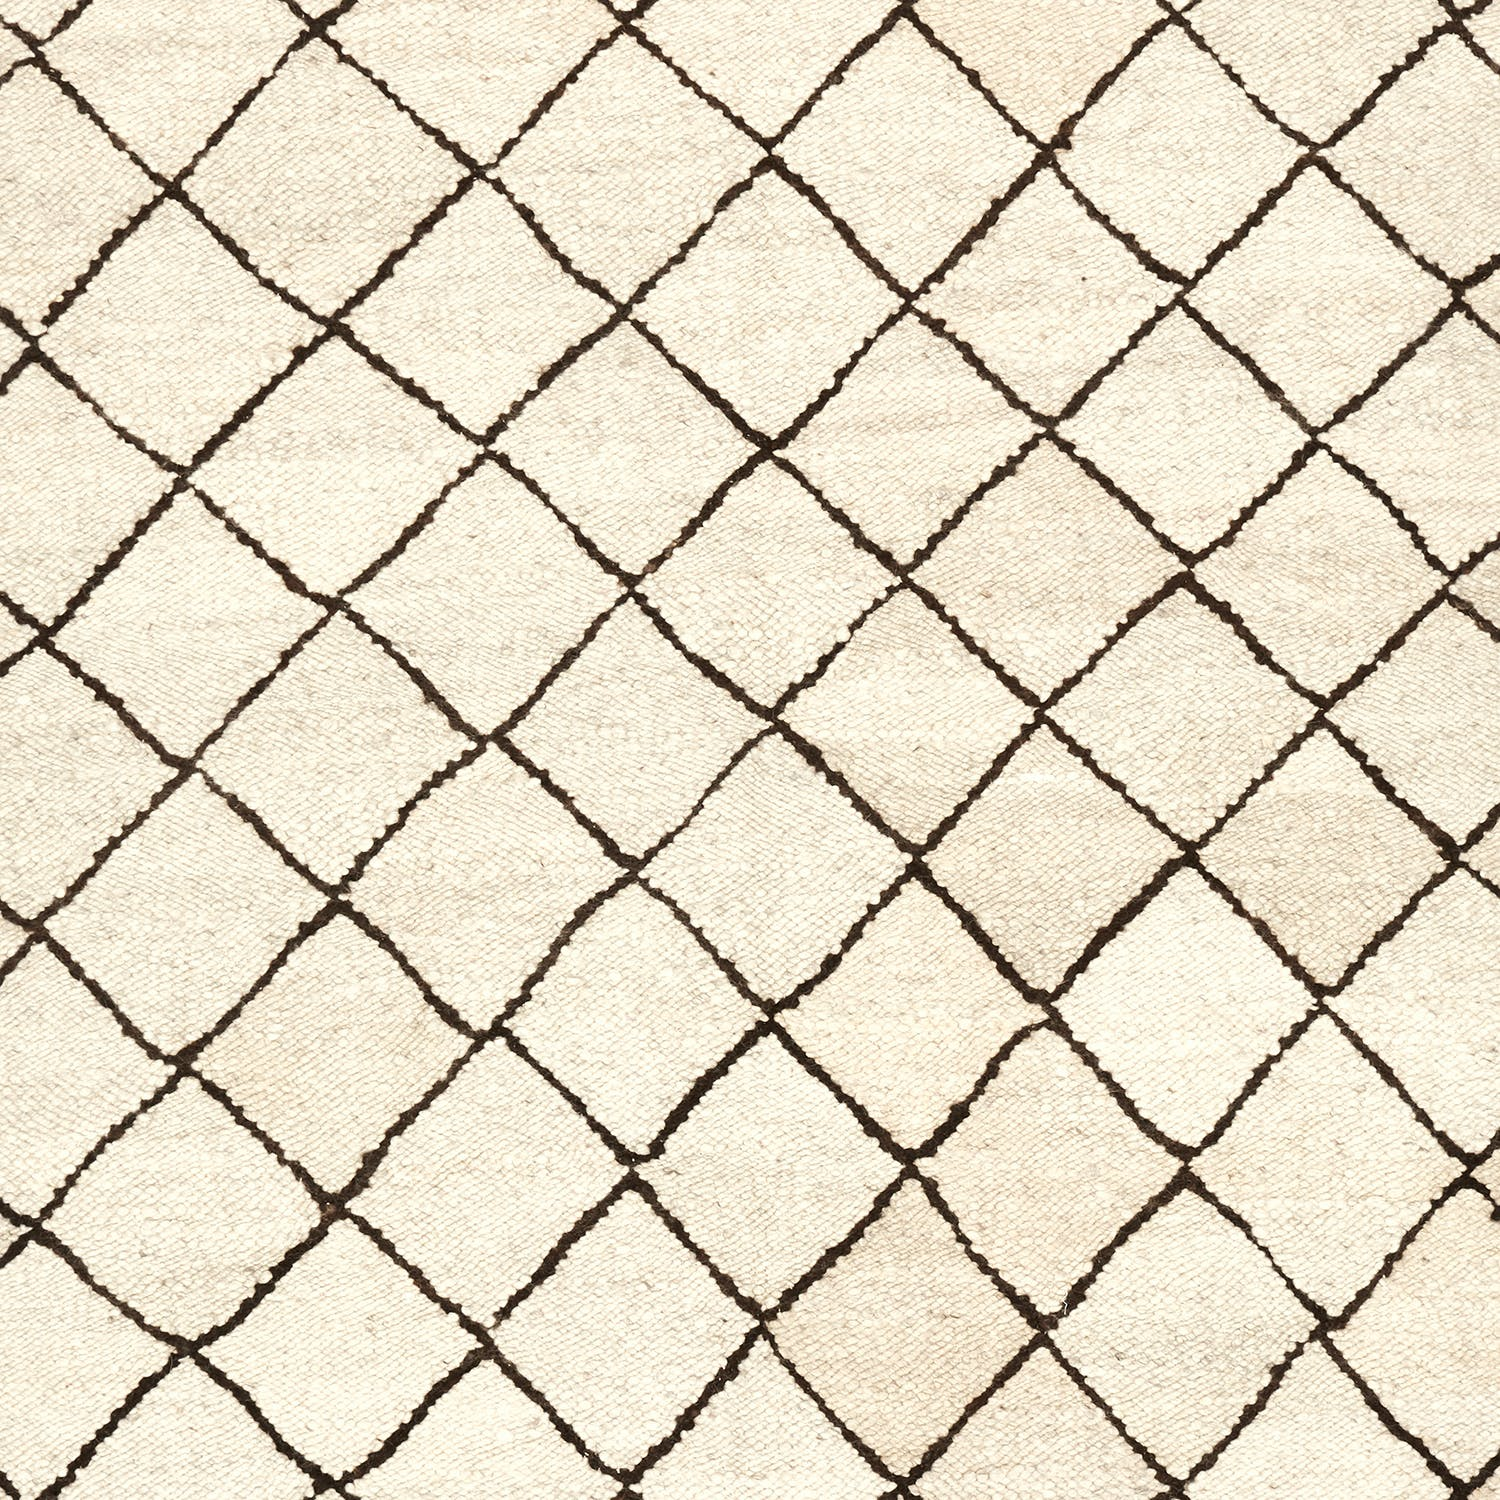 Contemporary Flat Weave - 6'x9'